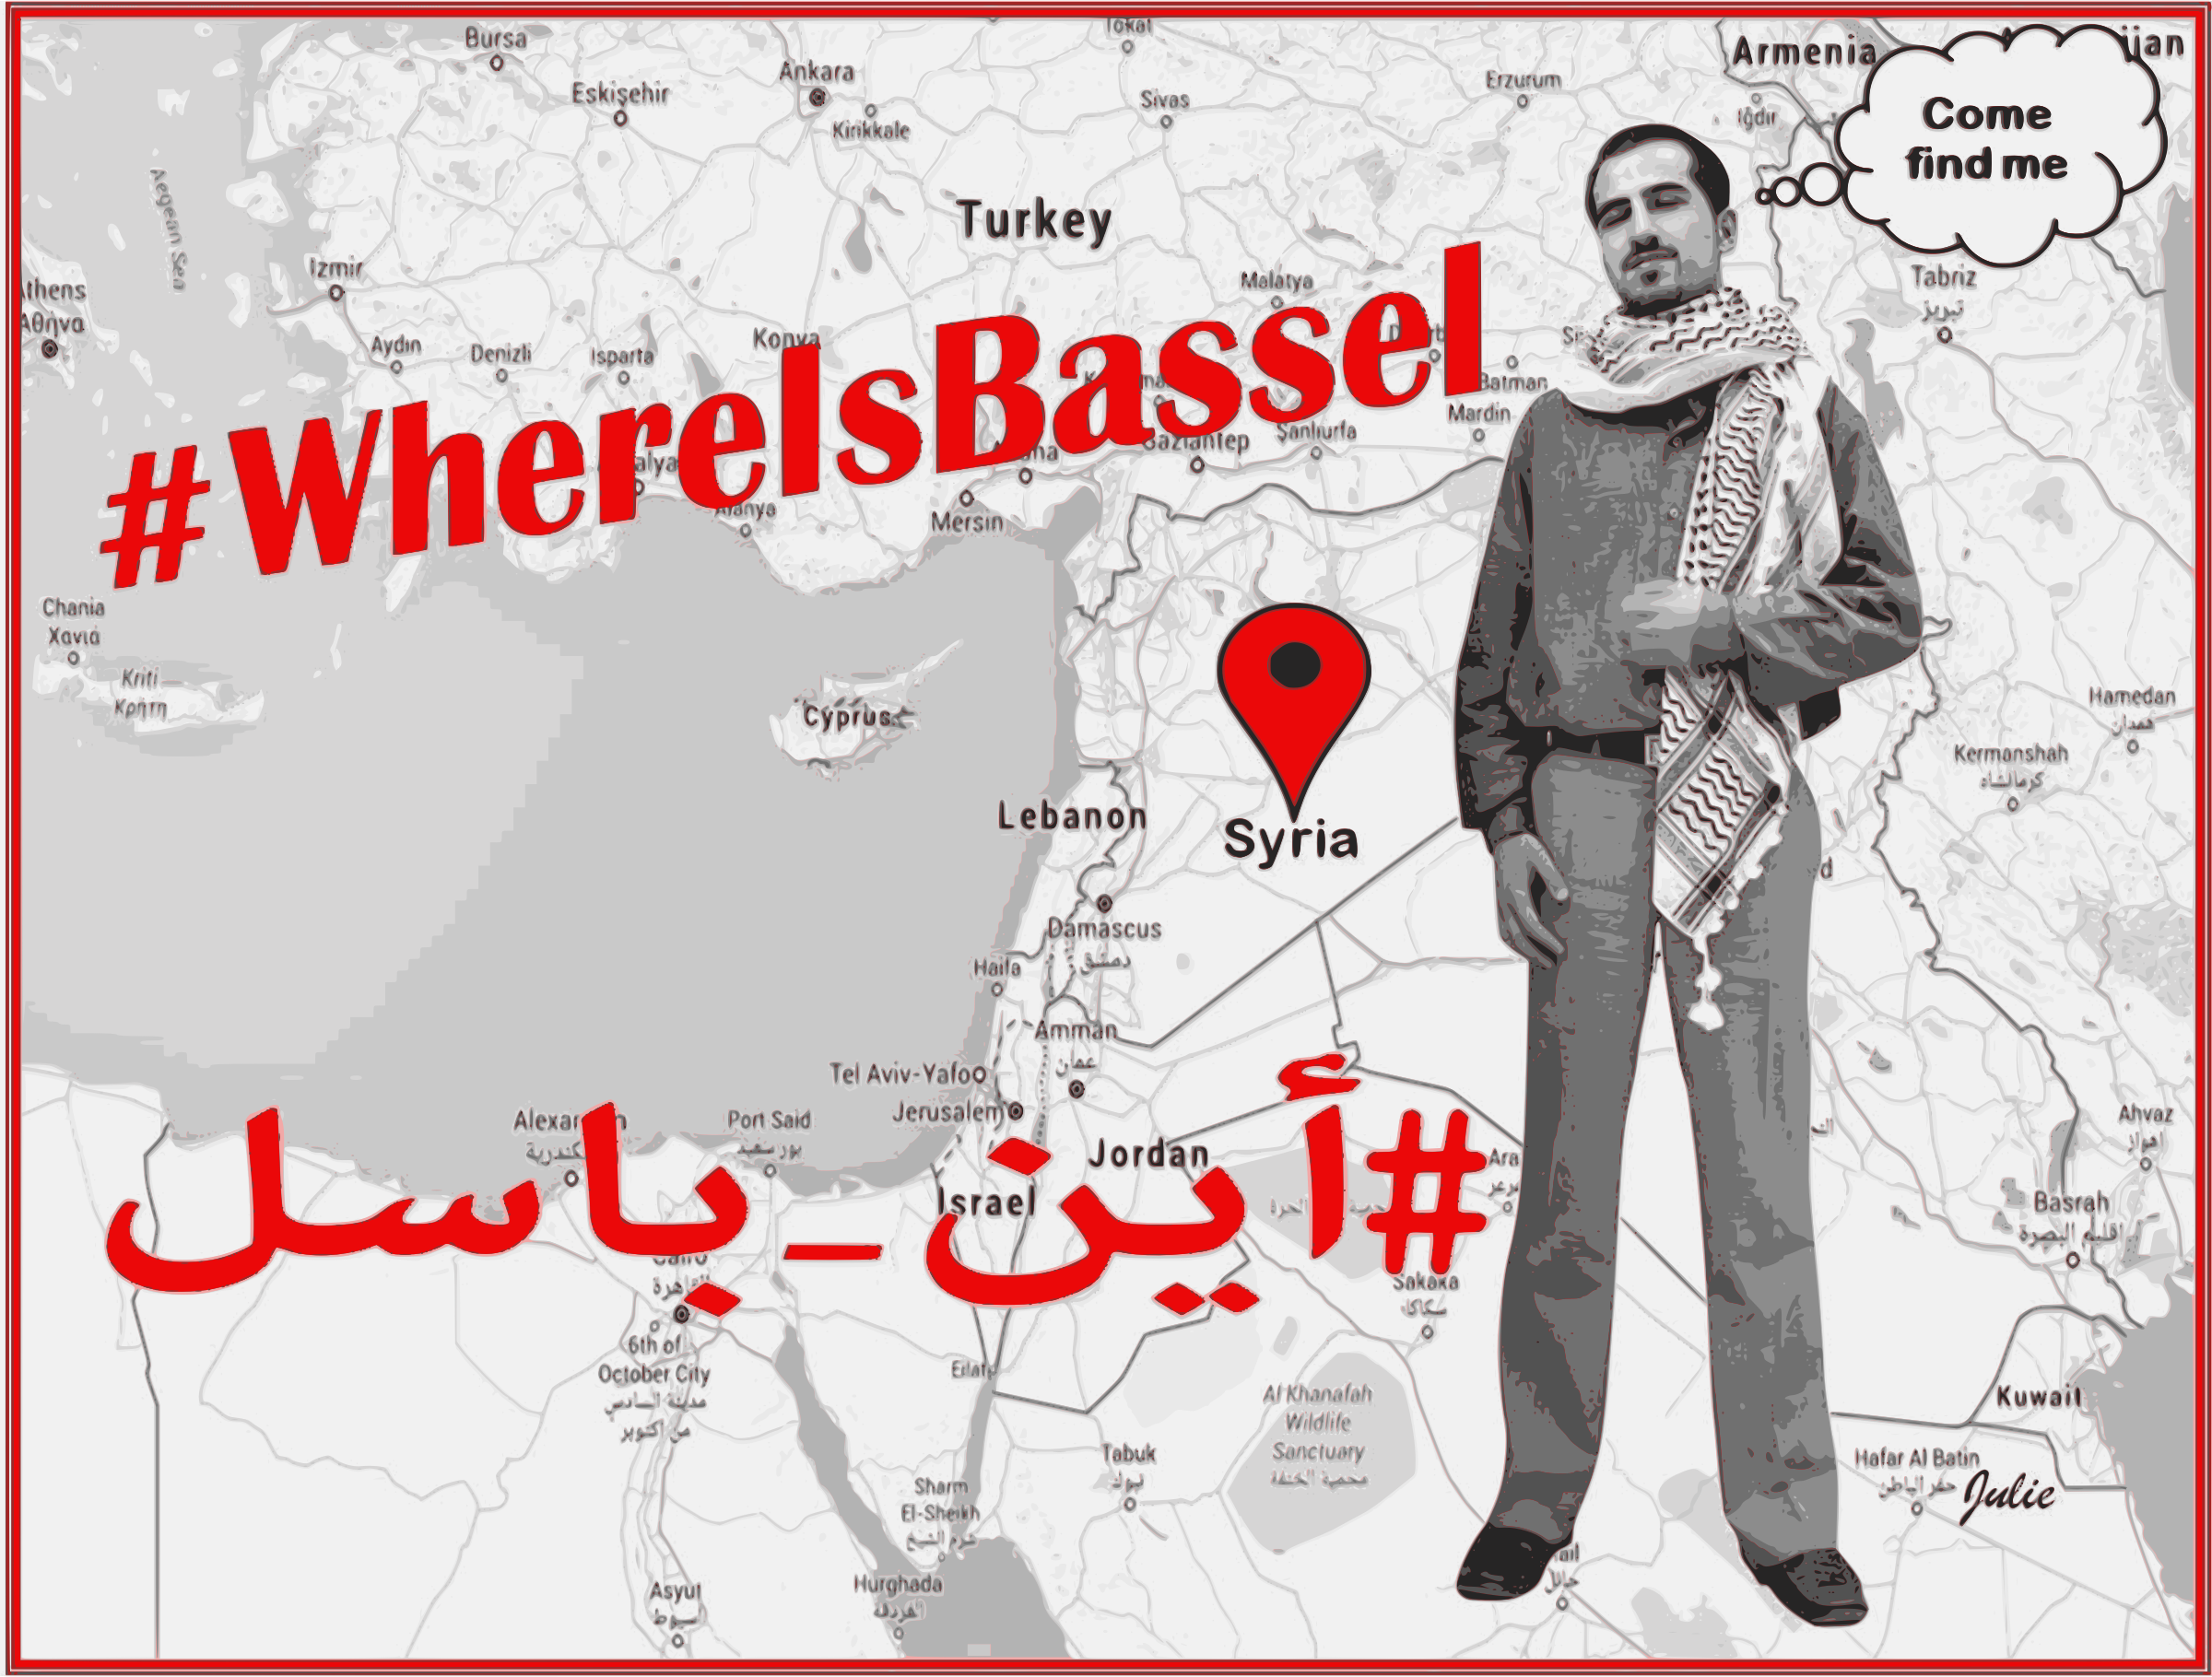 WhereIsBassel Come To Me by freebassel